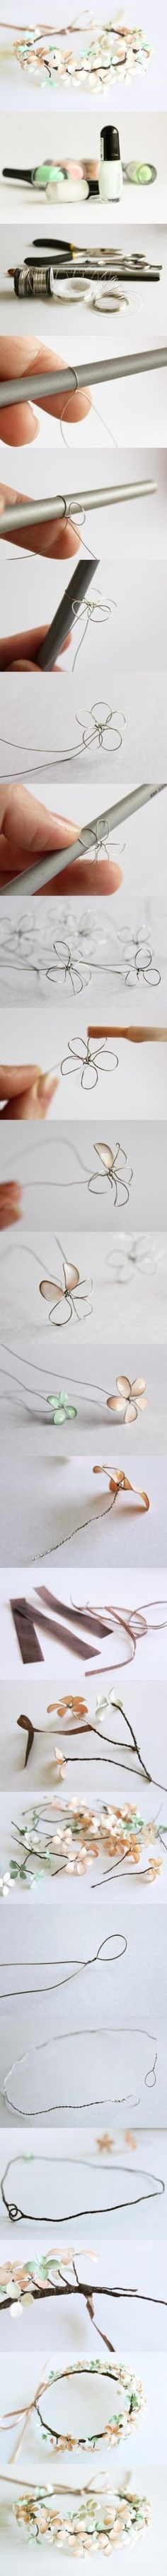 Nail polish & wire flowers... Need to try!